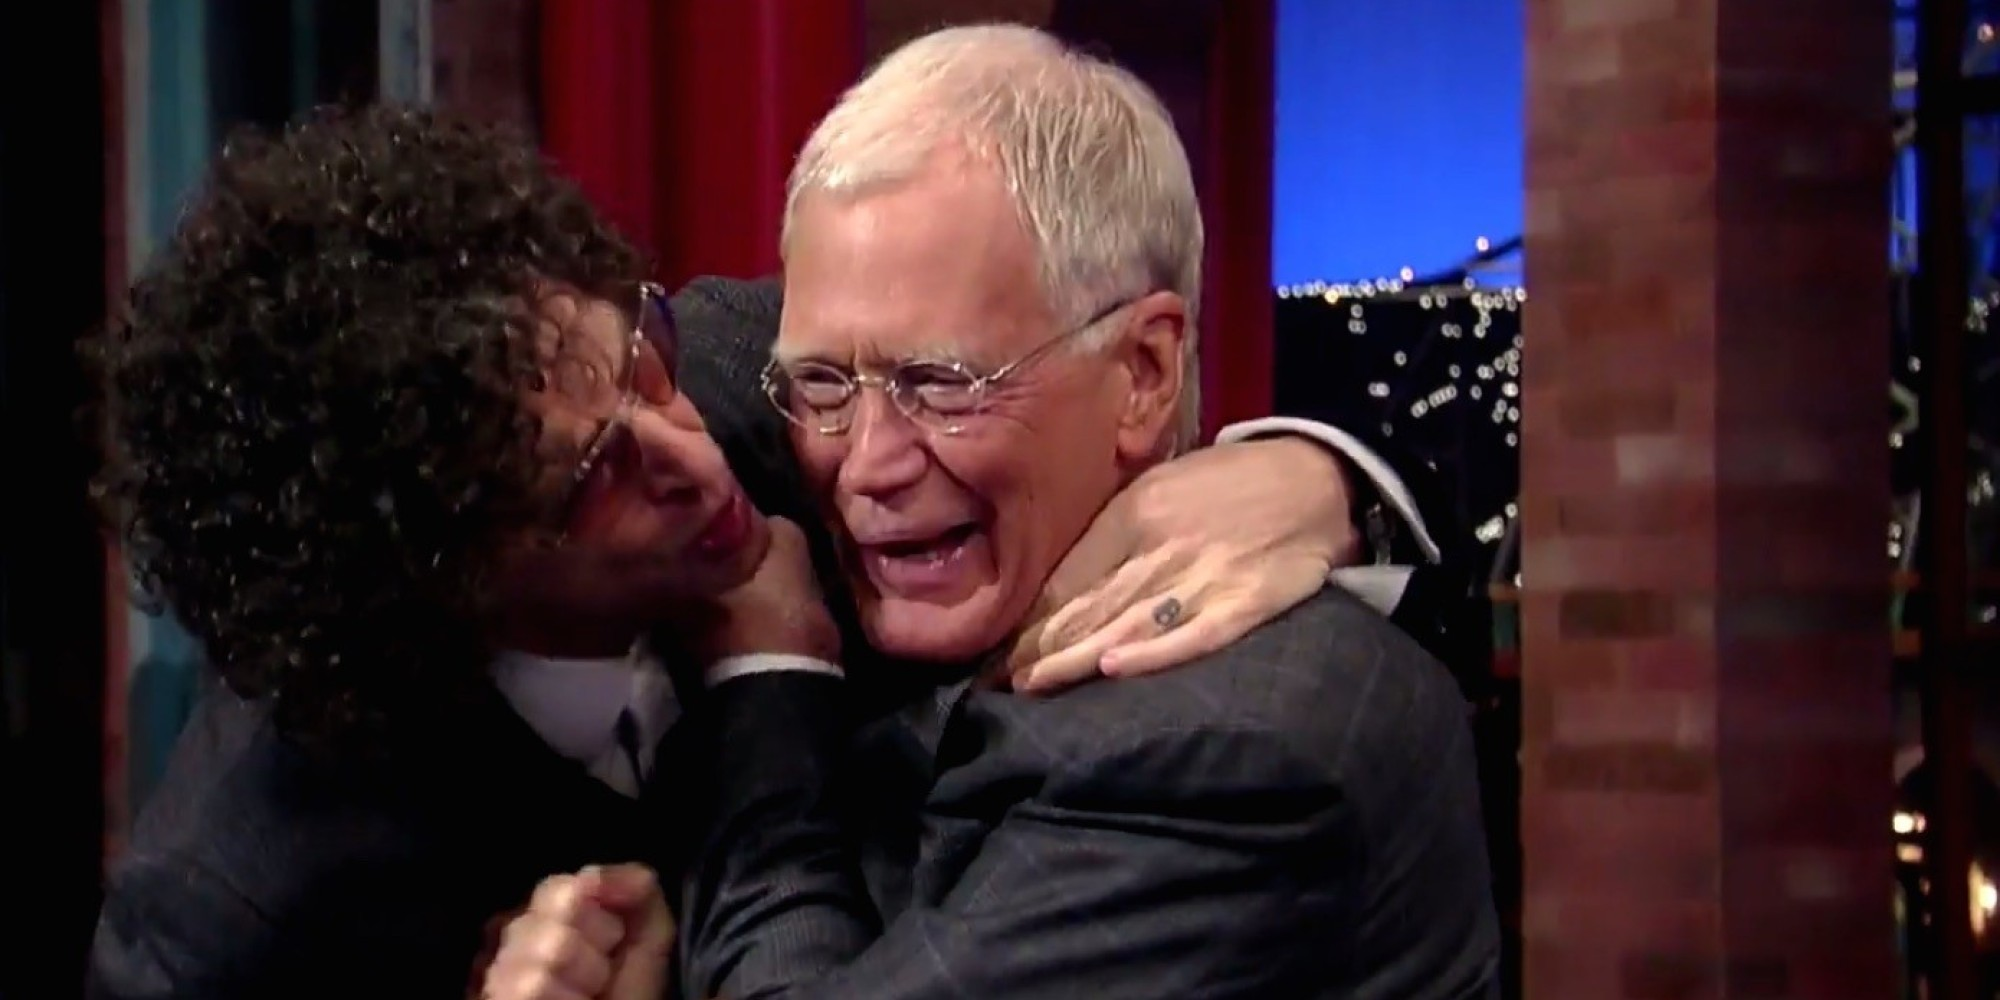 Howard Stern Tries To Give David Letterman A Goodbye Kiss | HuffPost